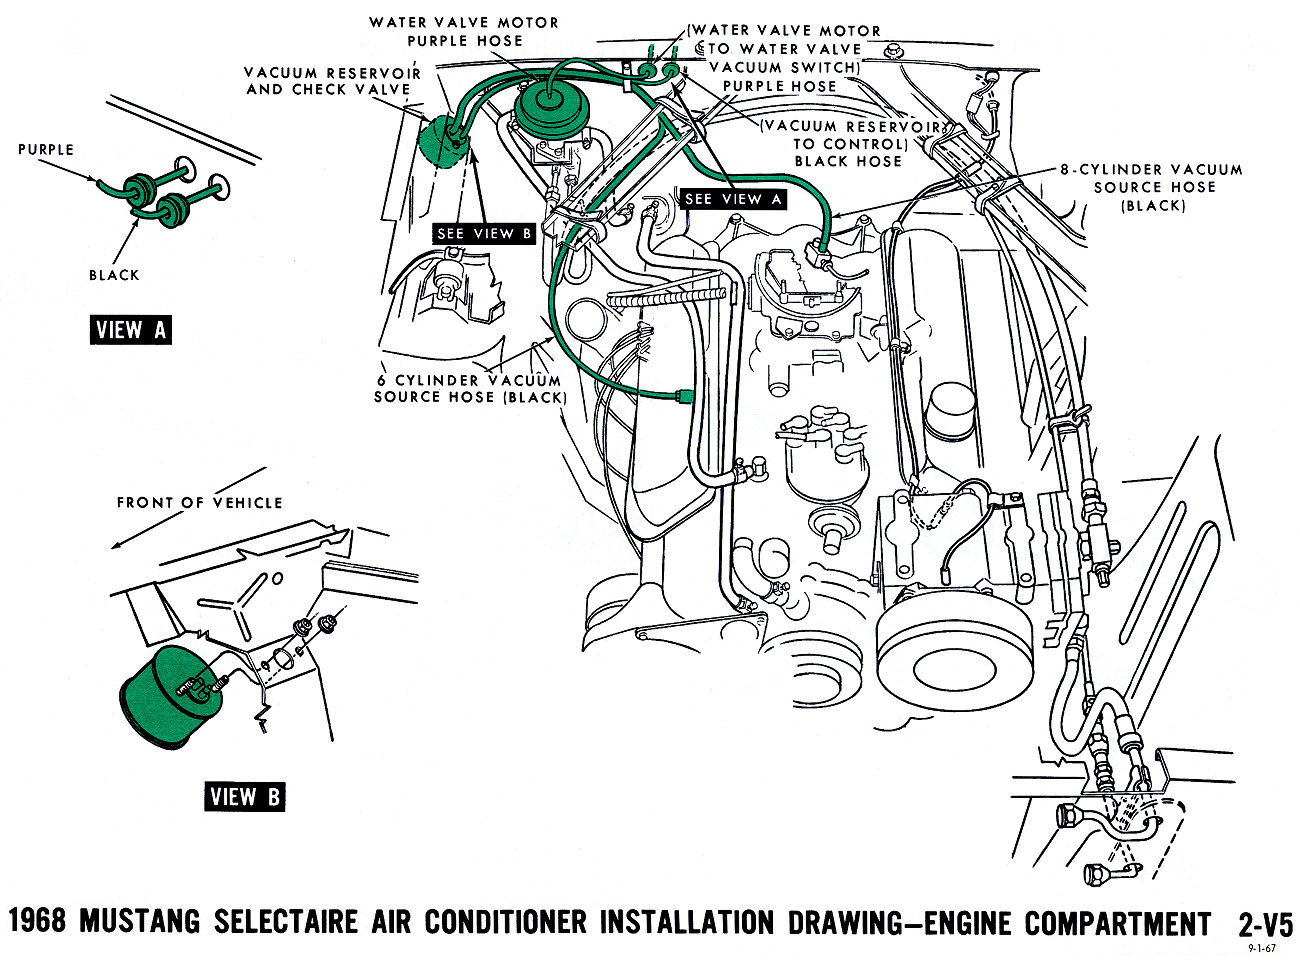 1968 Mustang Vacuum Diagrams on 2000 ford ranger horn